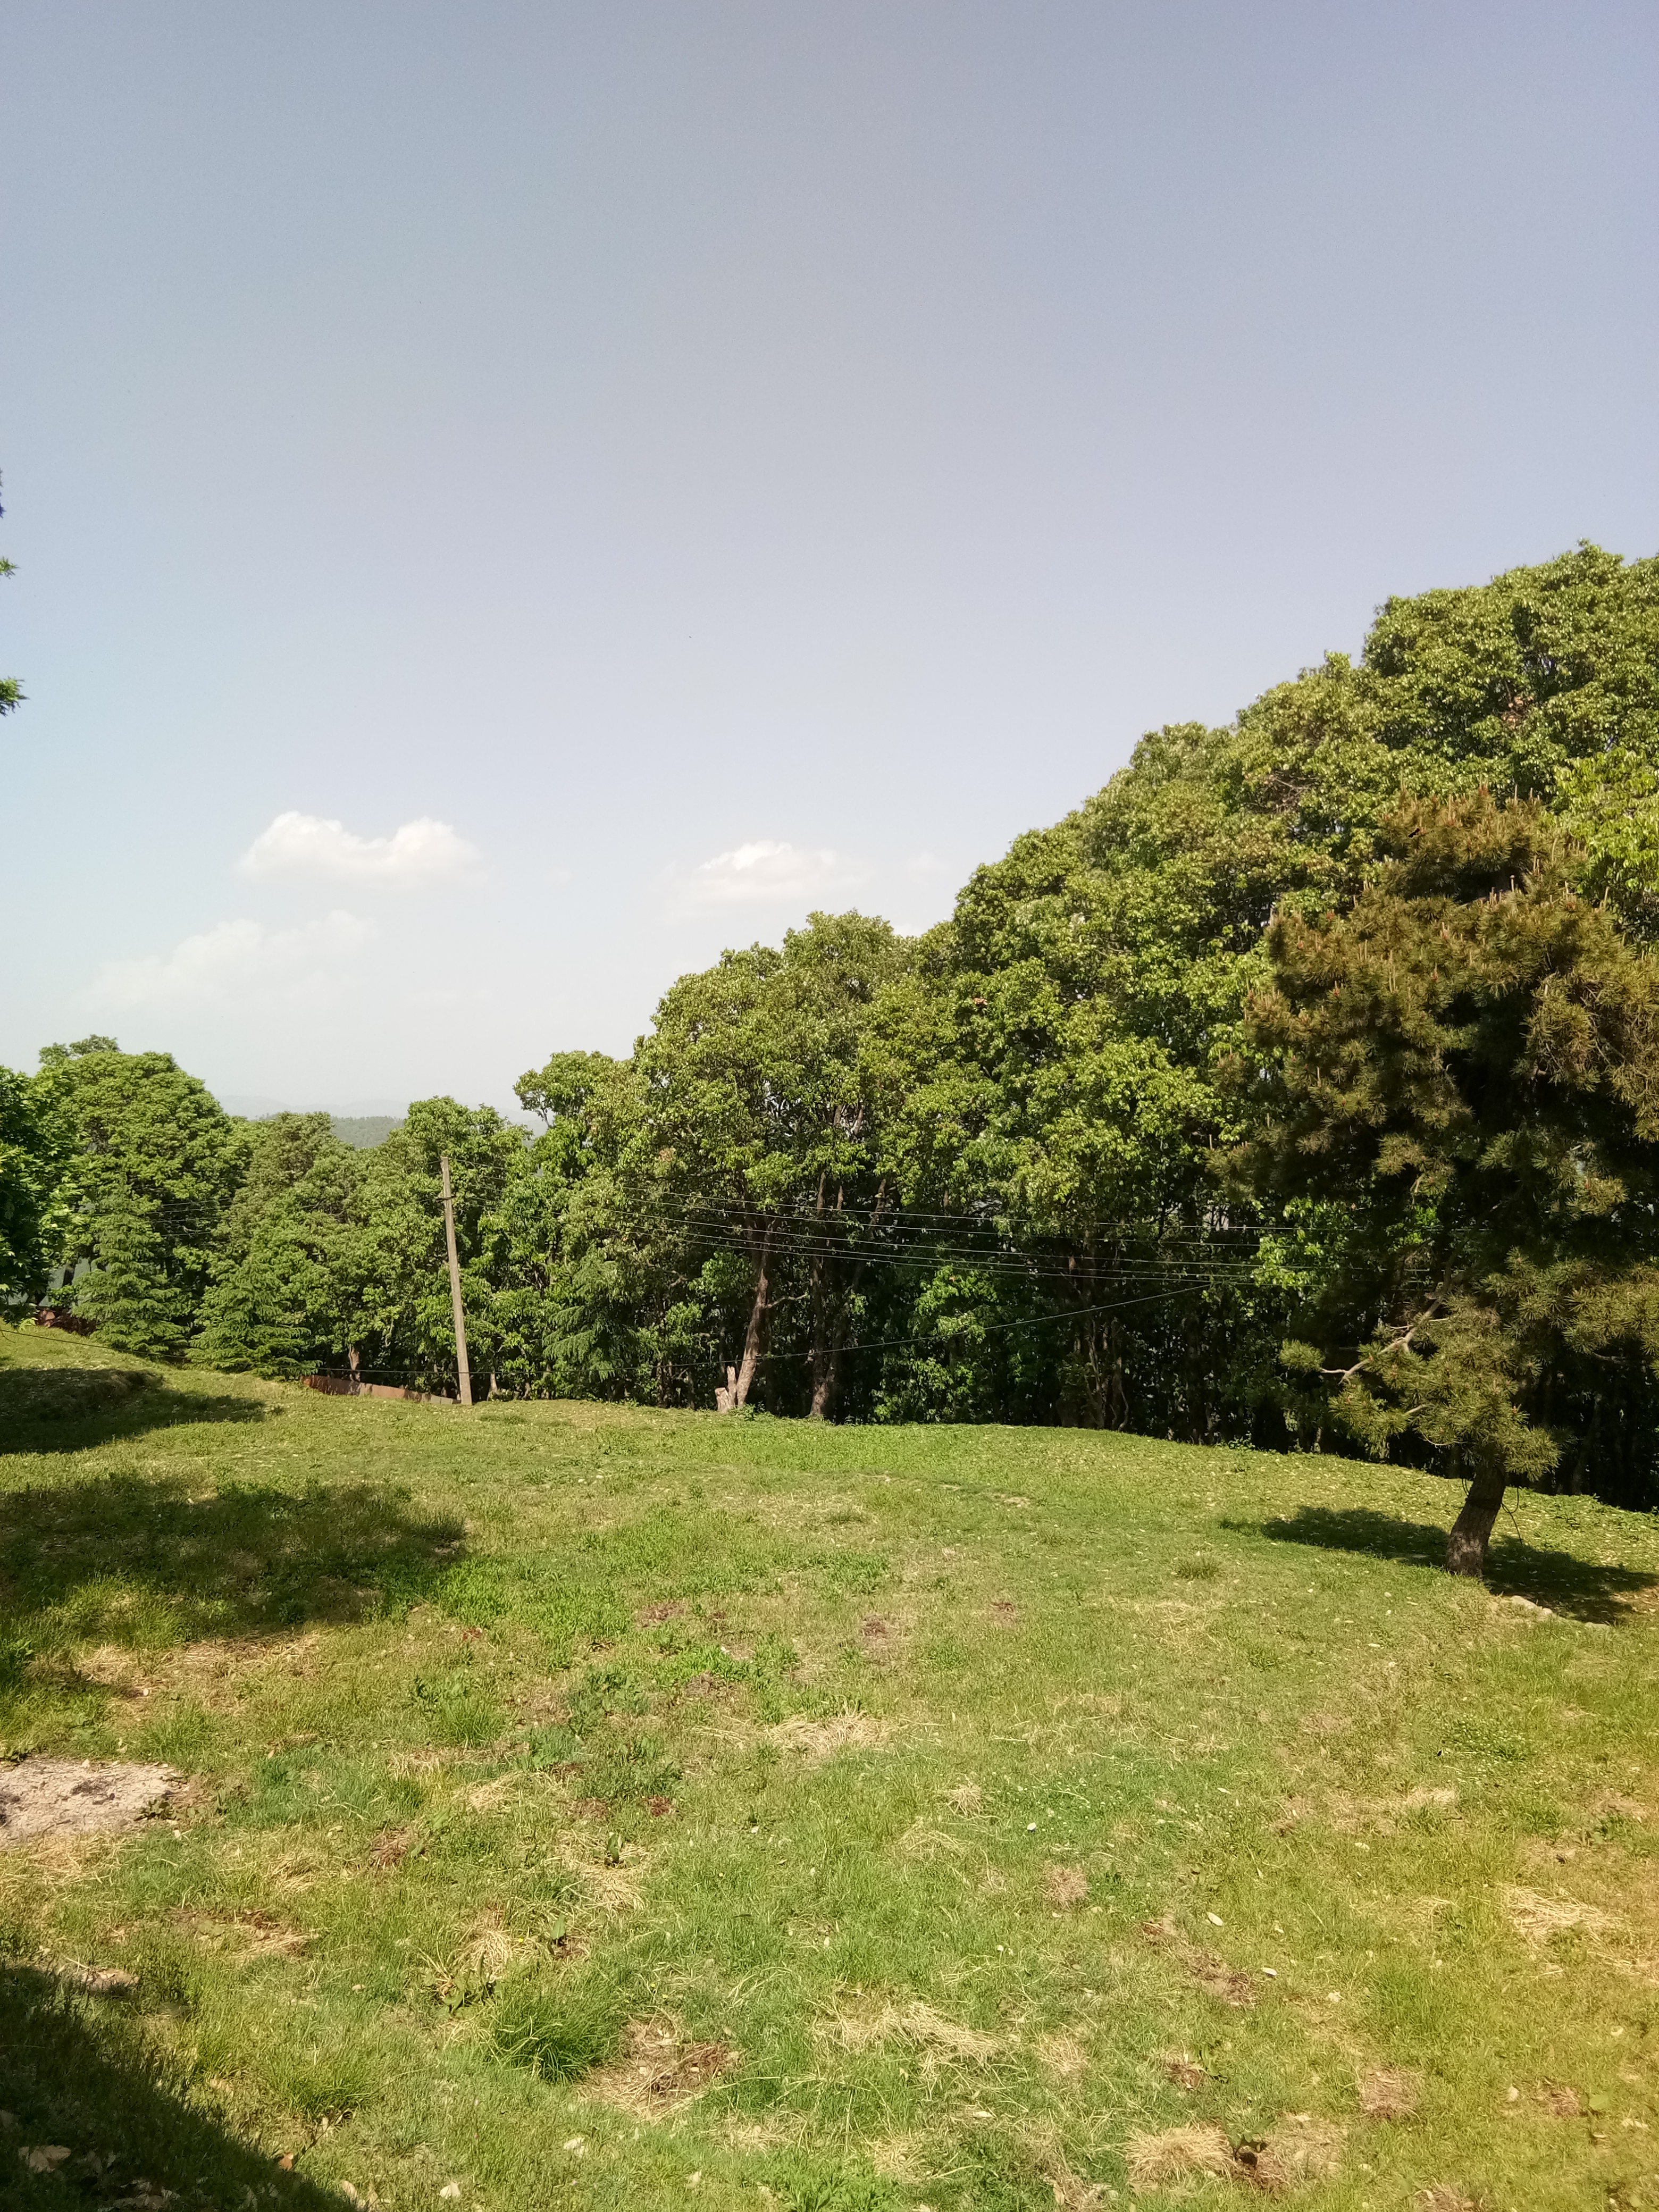 52 Bigha Land for sale at chail Himachal Pradesh — Drive in —- Hill top — Usable for  Hotel and Resort —- Total forest — Beautiful View — Price – 35 Cr ( Negotiable) —- Contact Us:- 9218227122 – 23